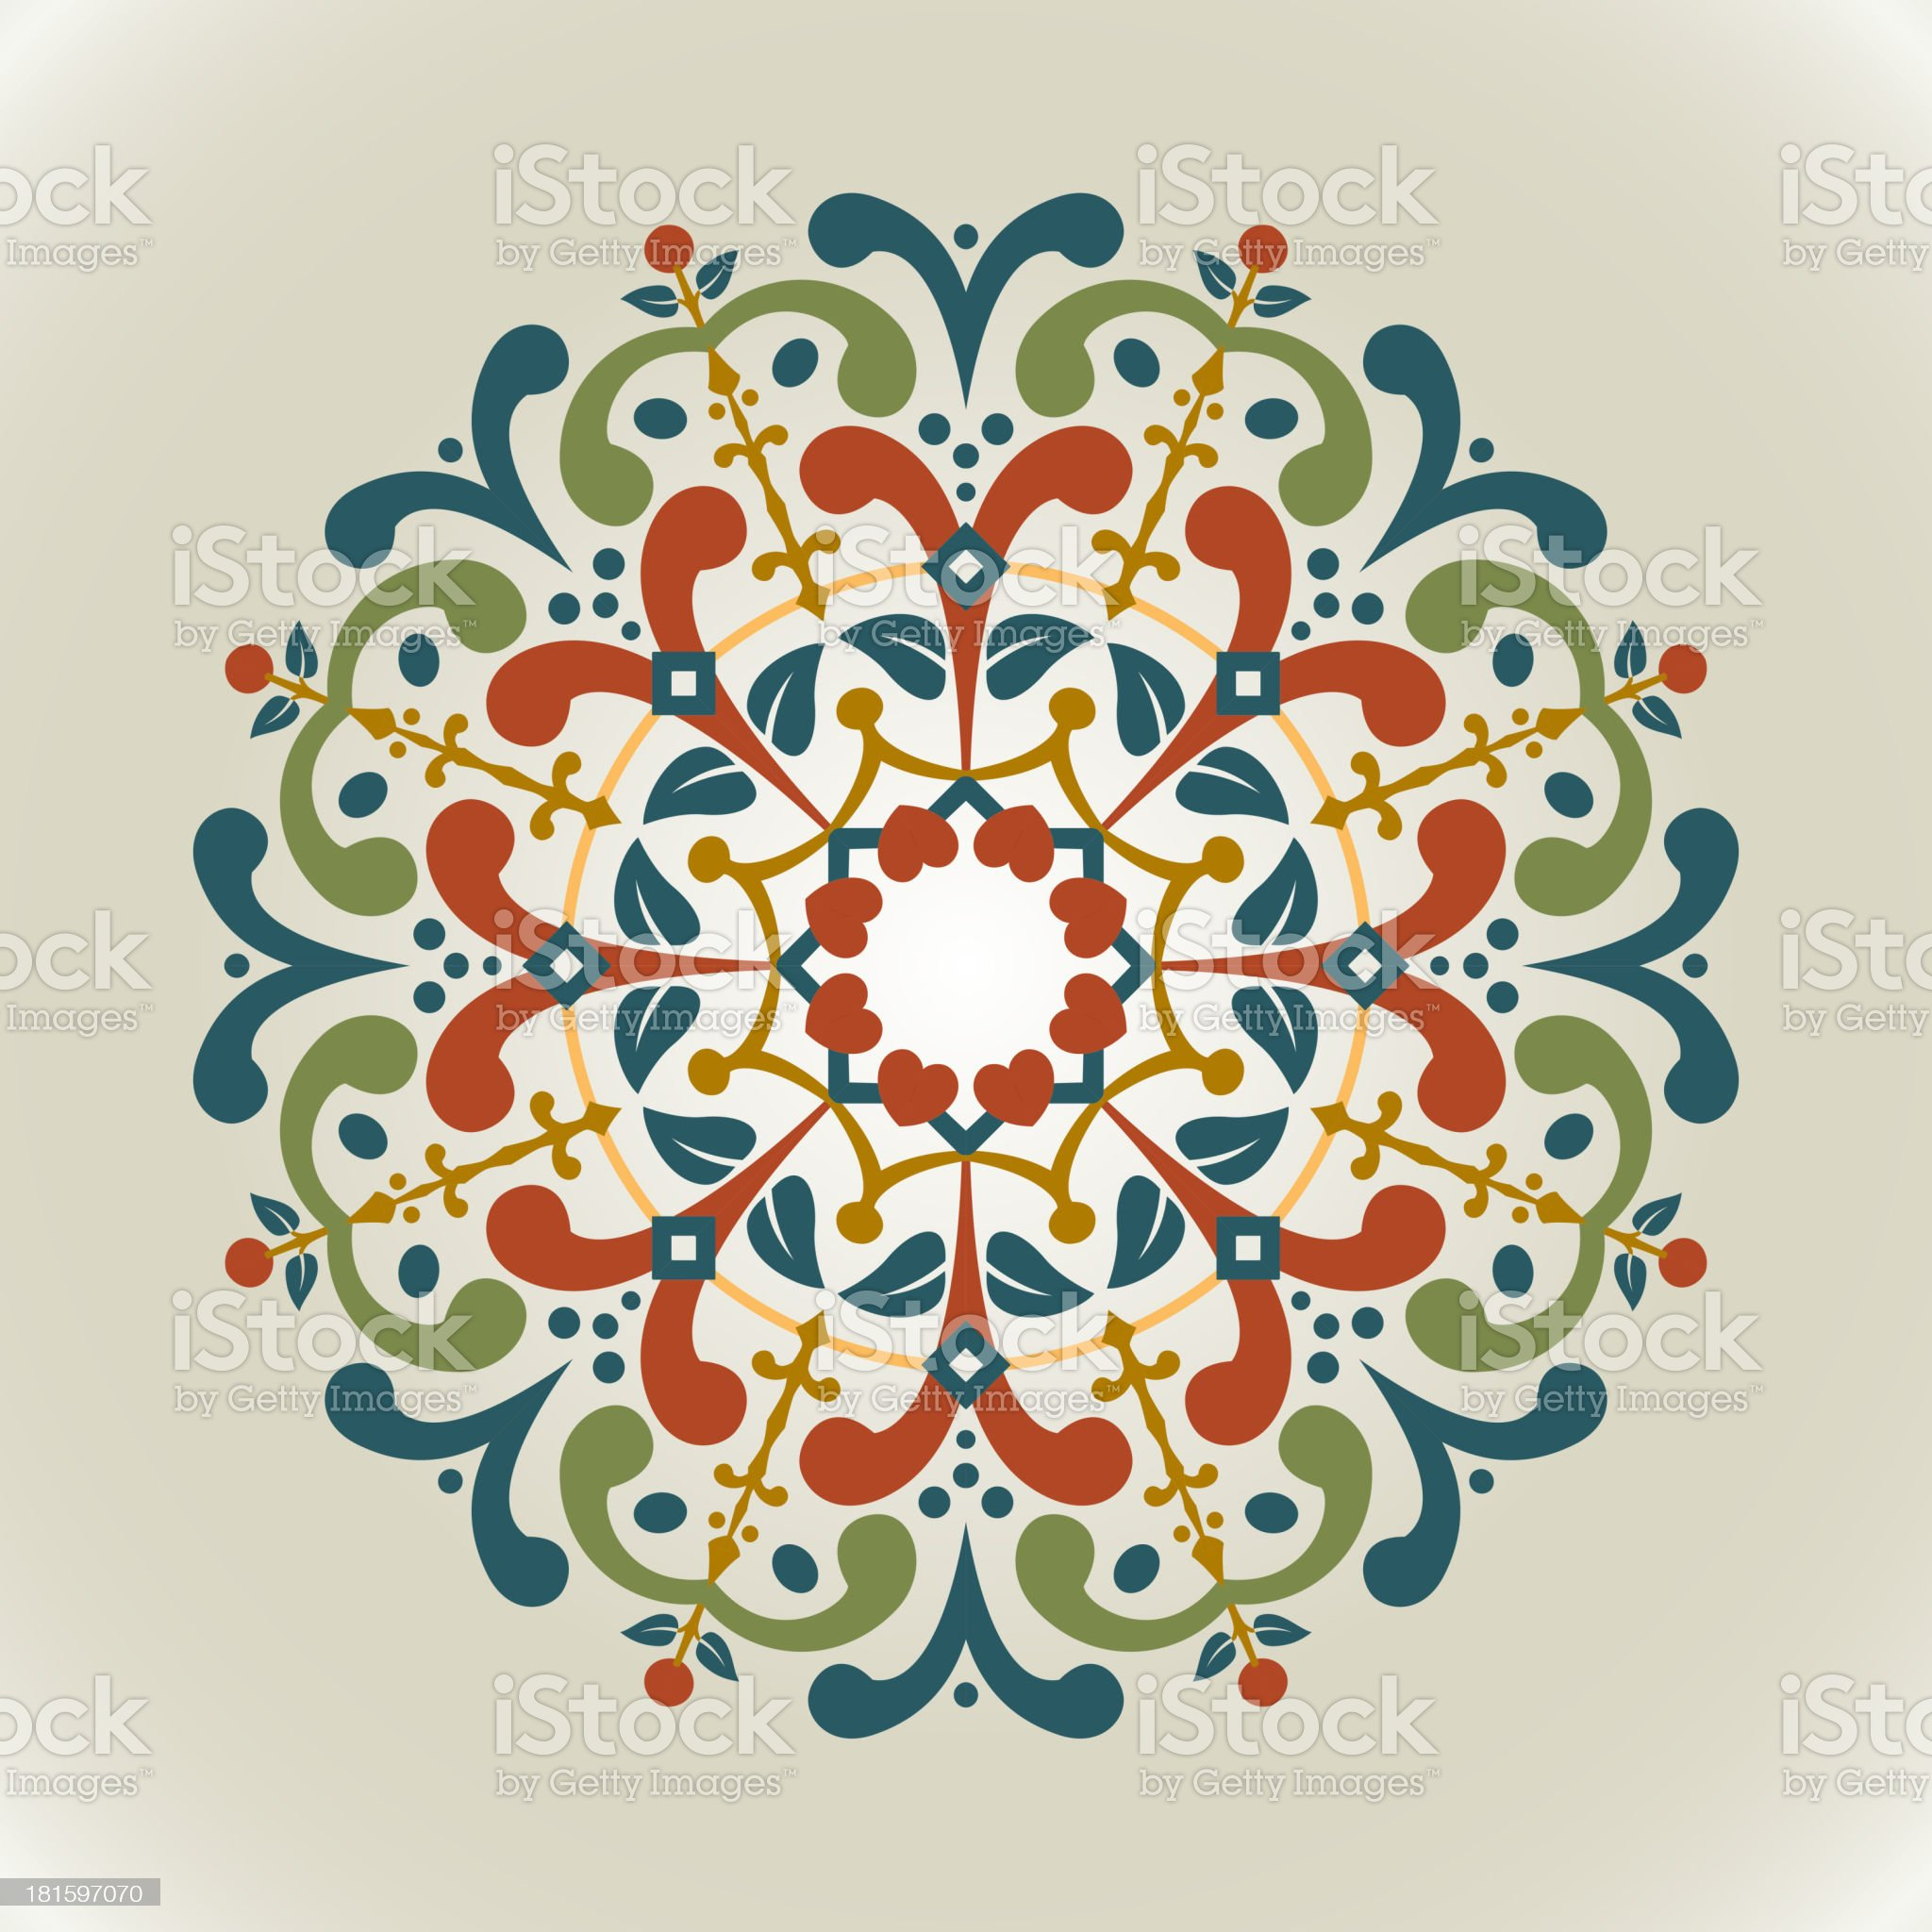 Vector illustration, vintage, with radial ornament. royalty-free stock vector art